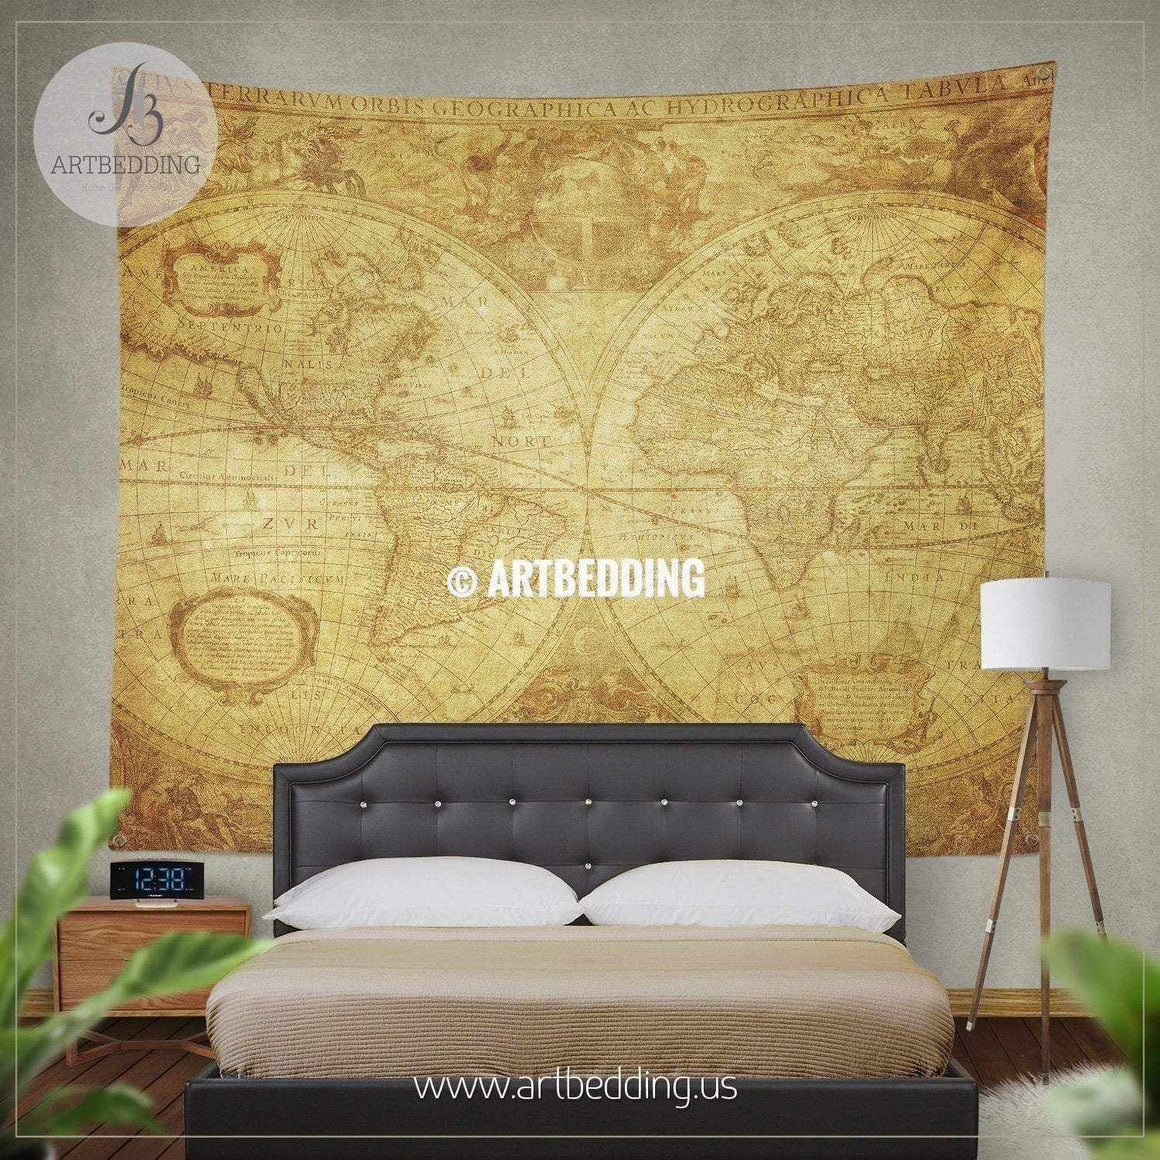 Ancient 1630 world map wall tapestry, vintage interior world map wall hanging, old map wall decor, vintage map wall art print Tapestry